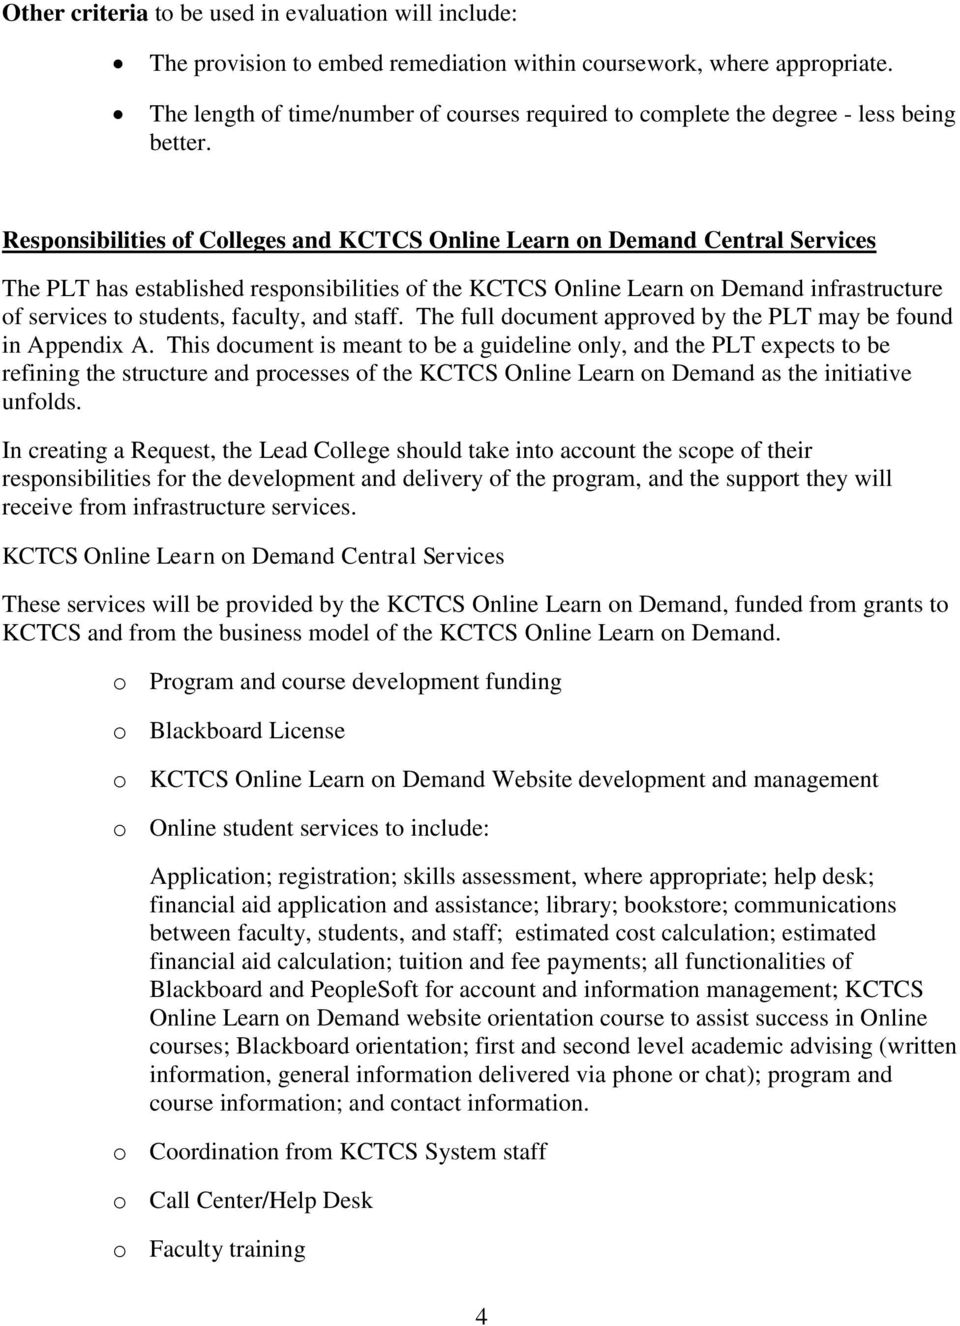 Responsibilities of Colleges and KCTCS Online Learn on Demand Central Services The PLT has established responsibilities of the KCTCS Online Learn on Demand infrastructure of services to students,